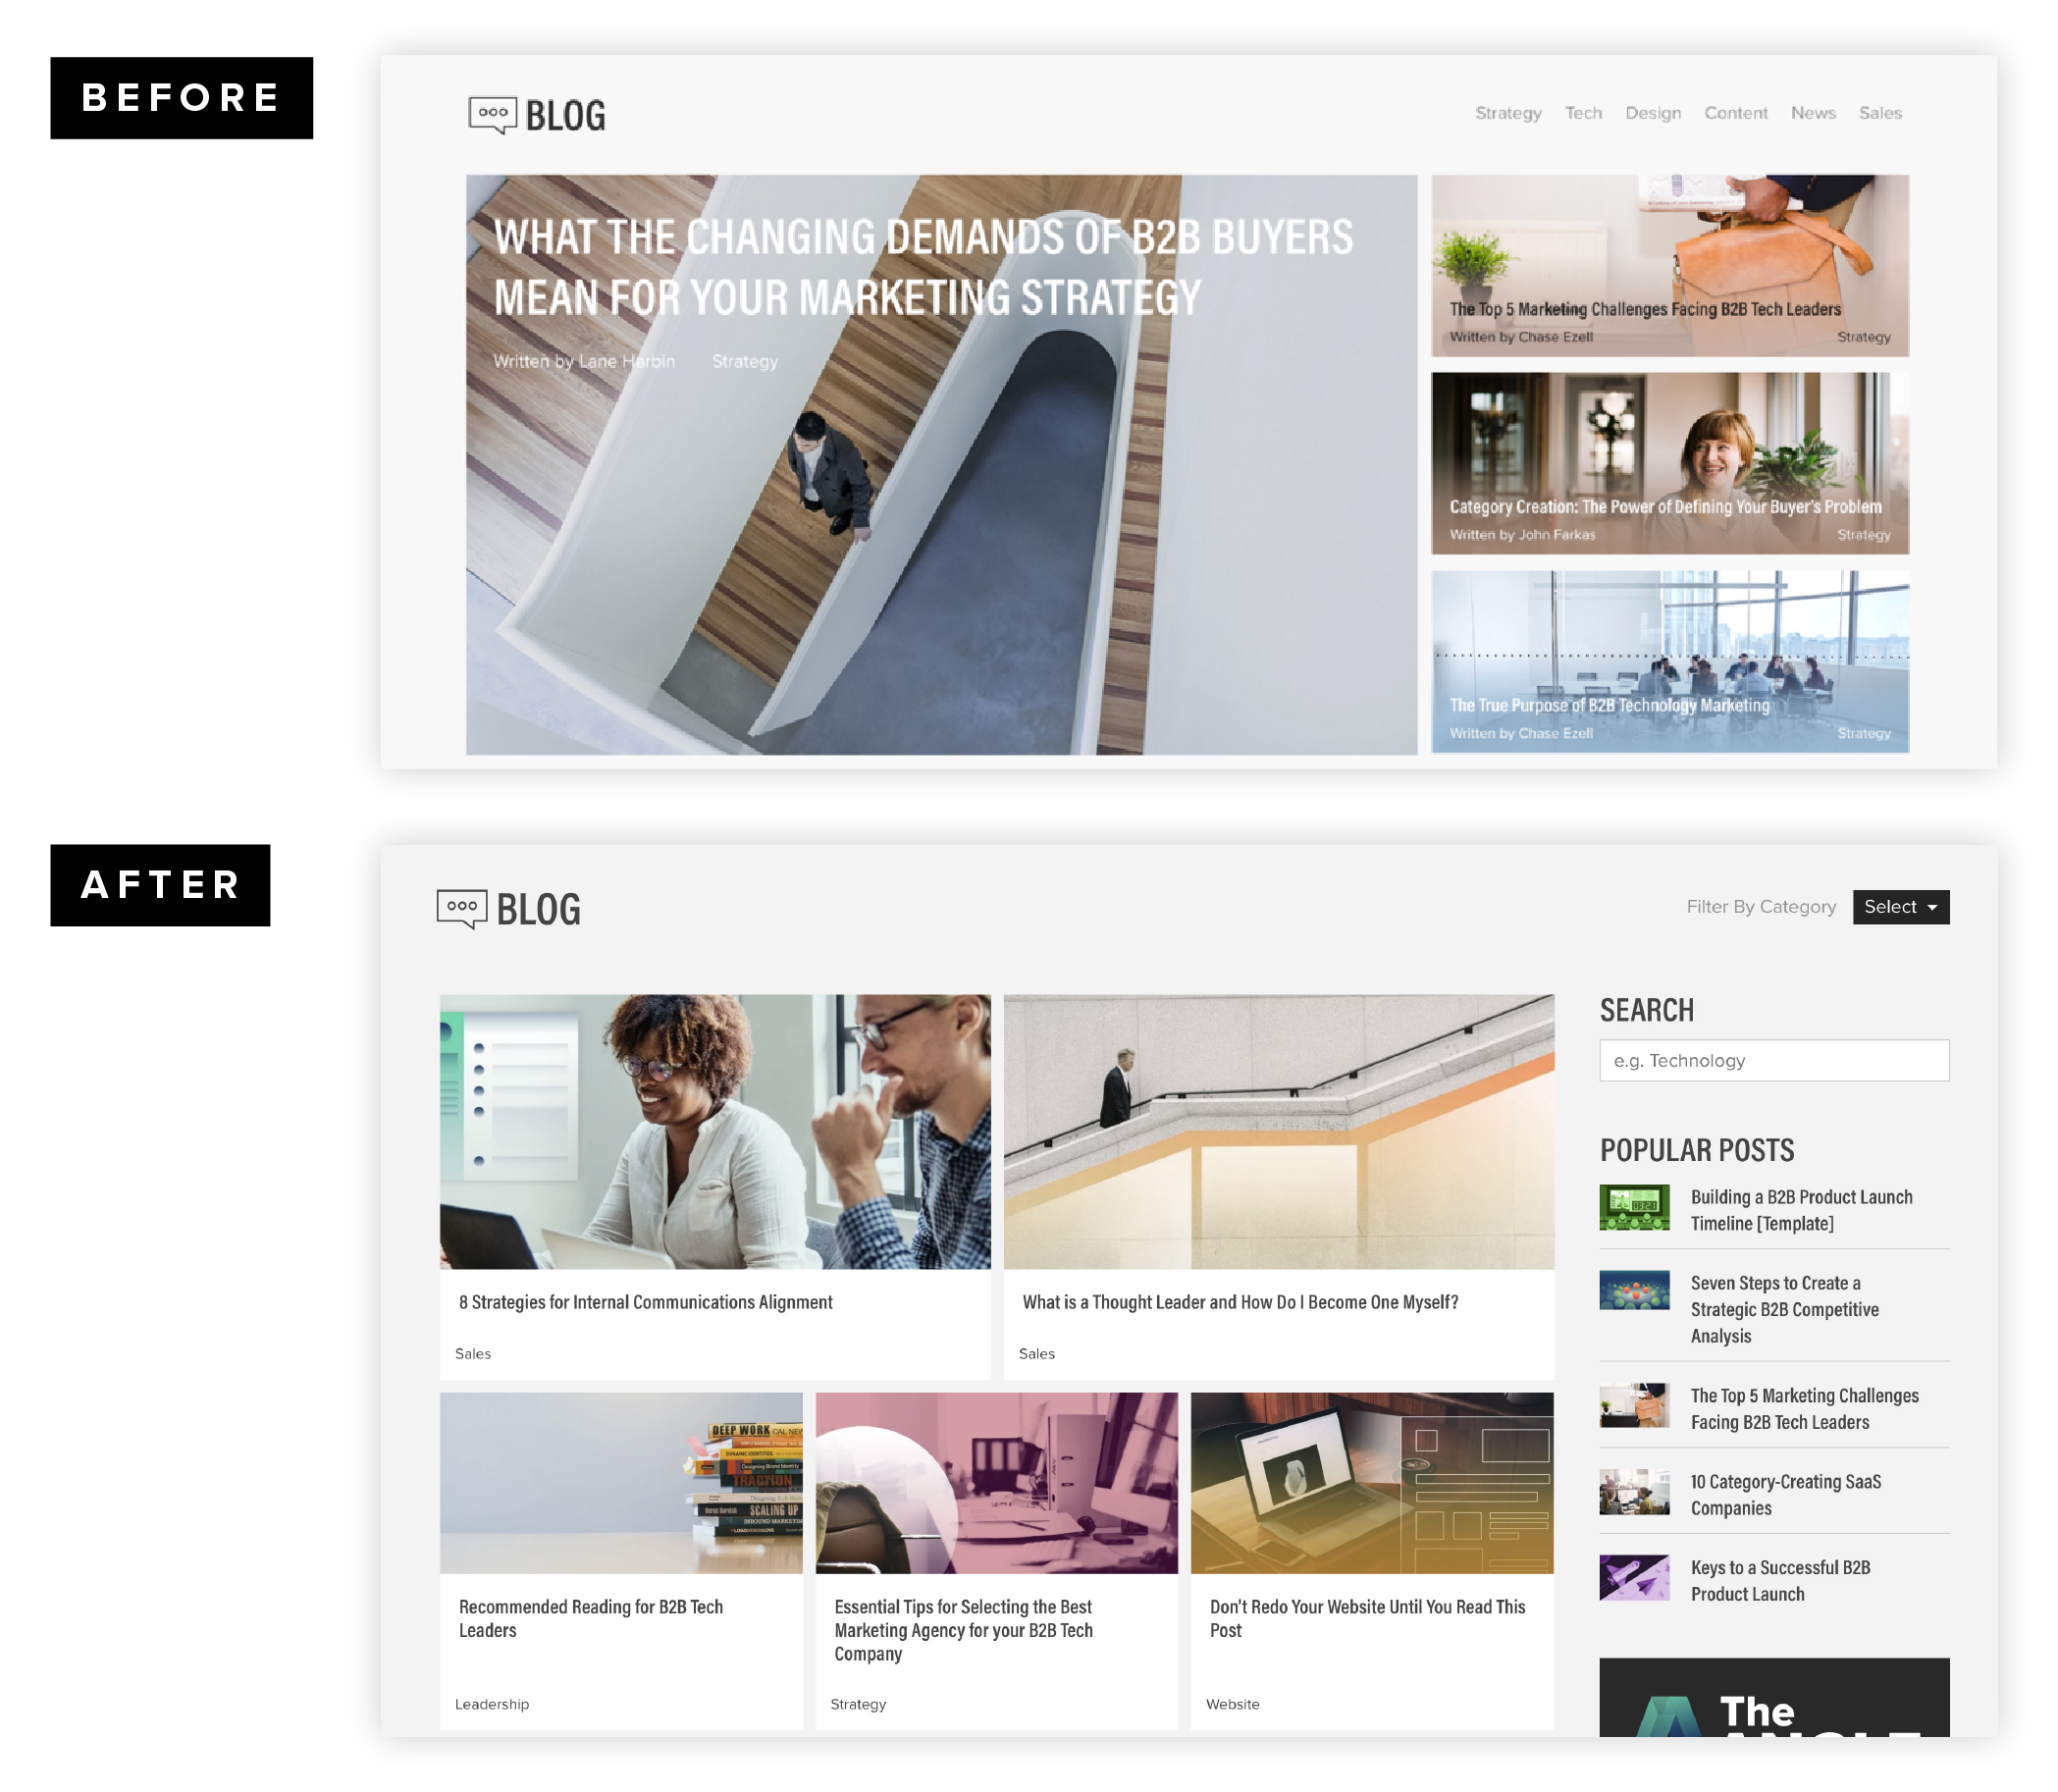 Website design overhaul before and after